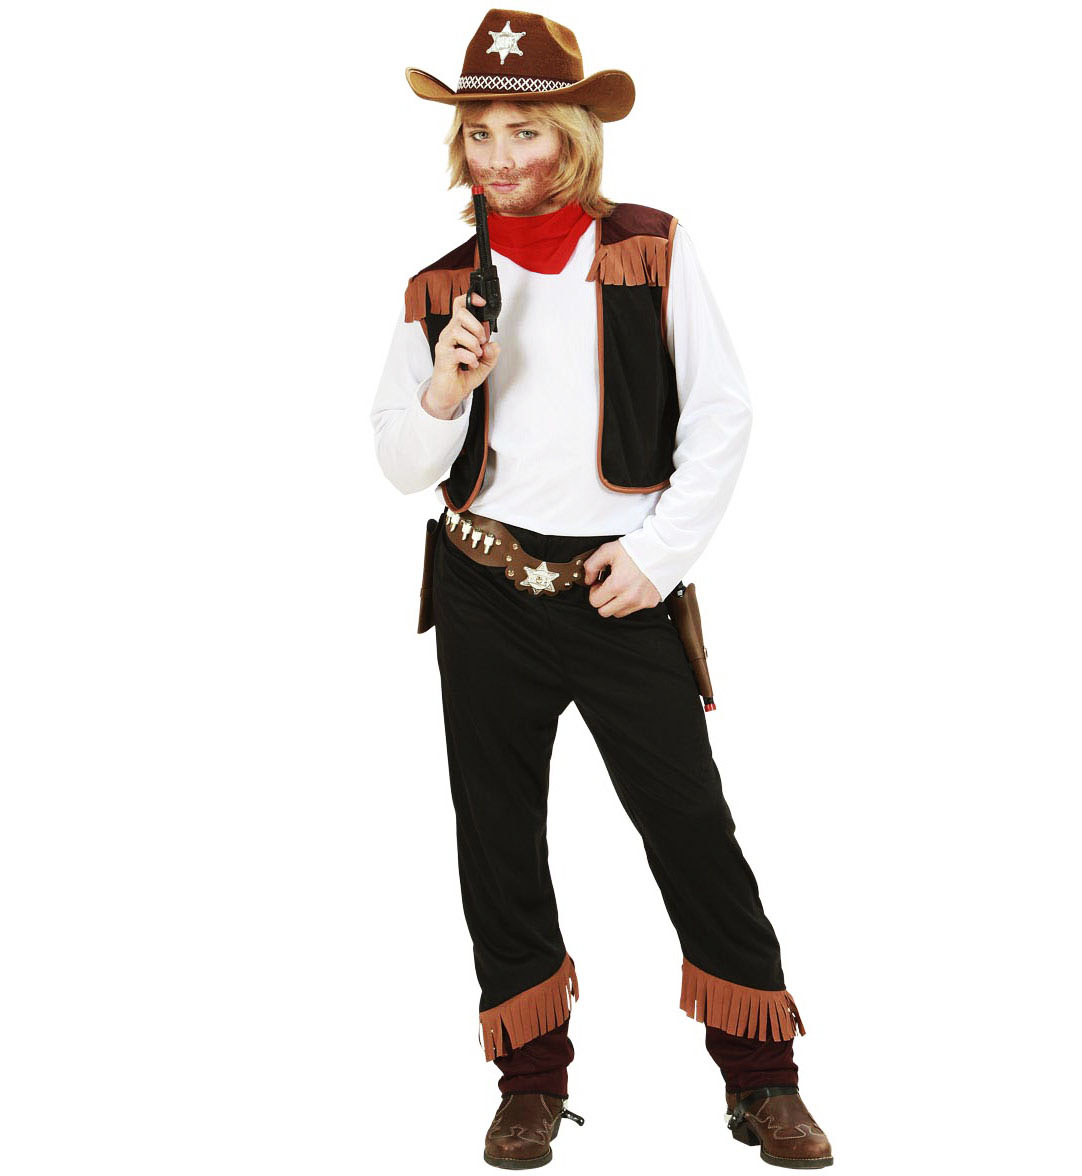 Childrens Cowboy Fancy Dress Wild West Party Costume Outfit Set 128Cm 5-7 Yrs